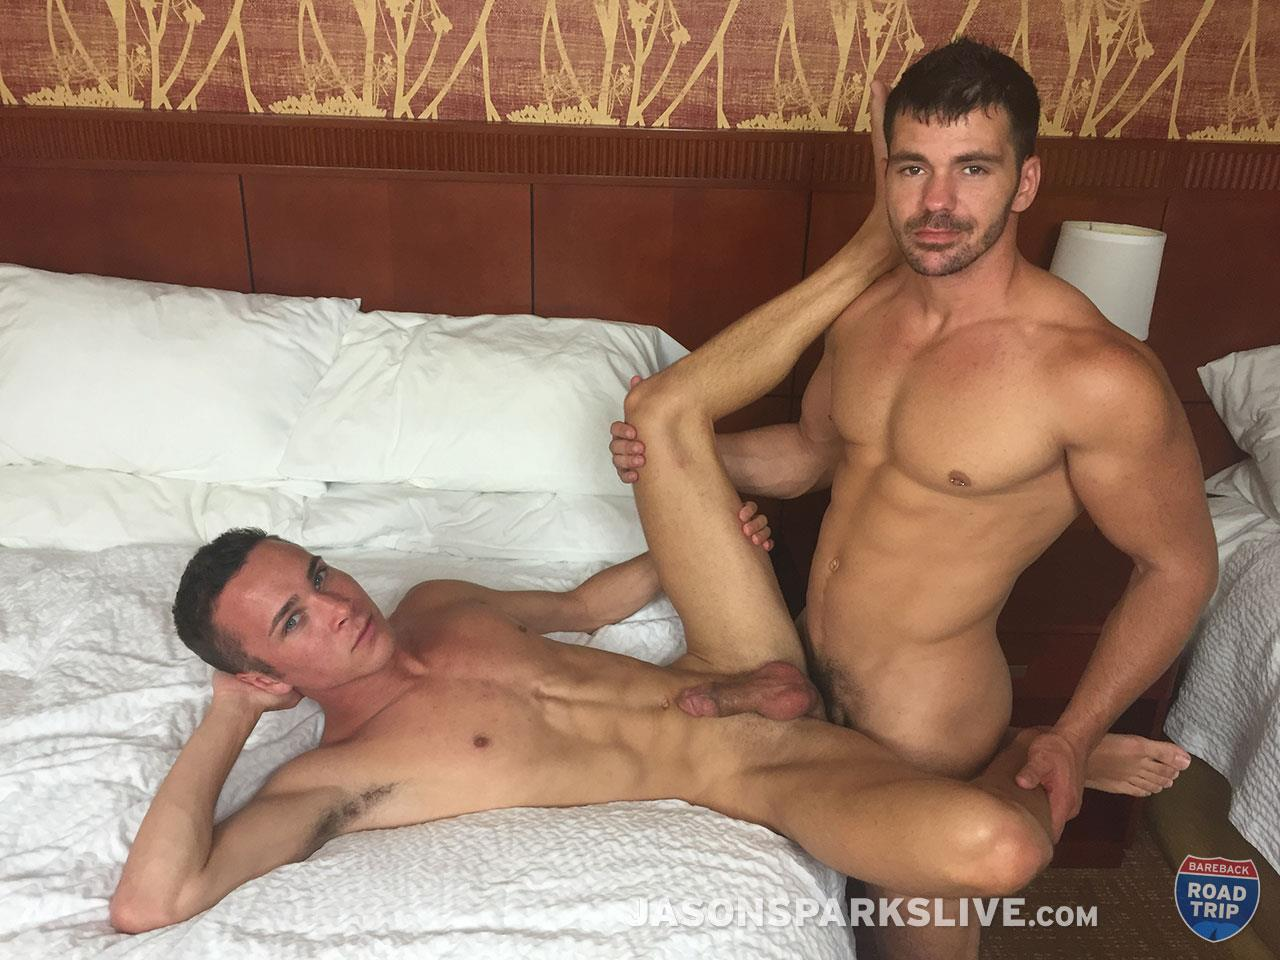 Jason Sparks Live Chandler Mason and Brogan Reed Barebacking Jocks 03 Getting Bareback Fucked in an Indianapolis Hotel Room